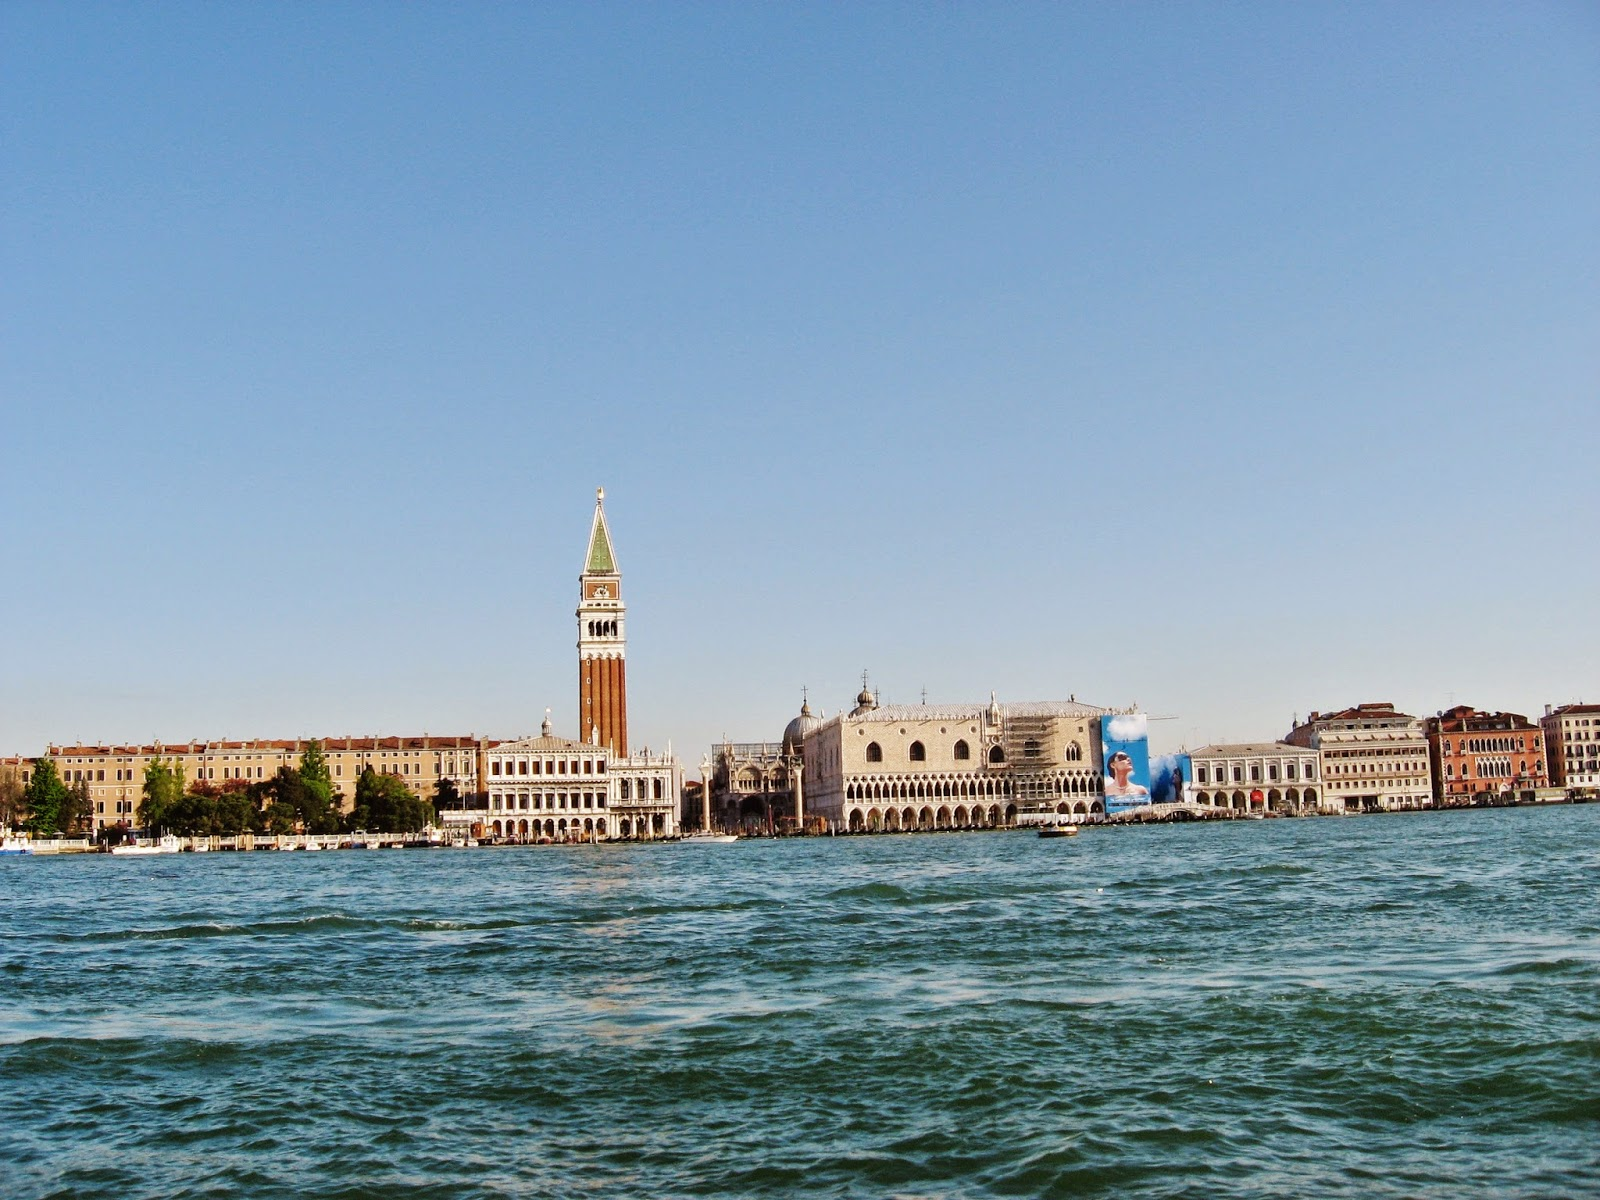 Bijuleni - Travel Guide for a Day Trip in Venice